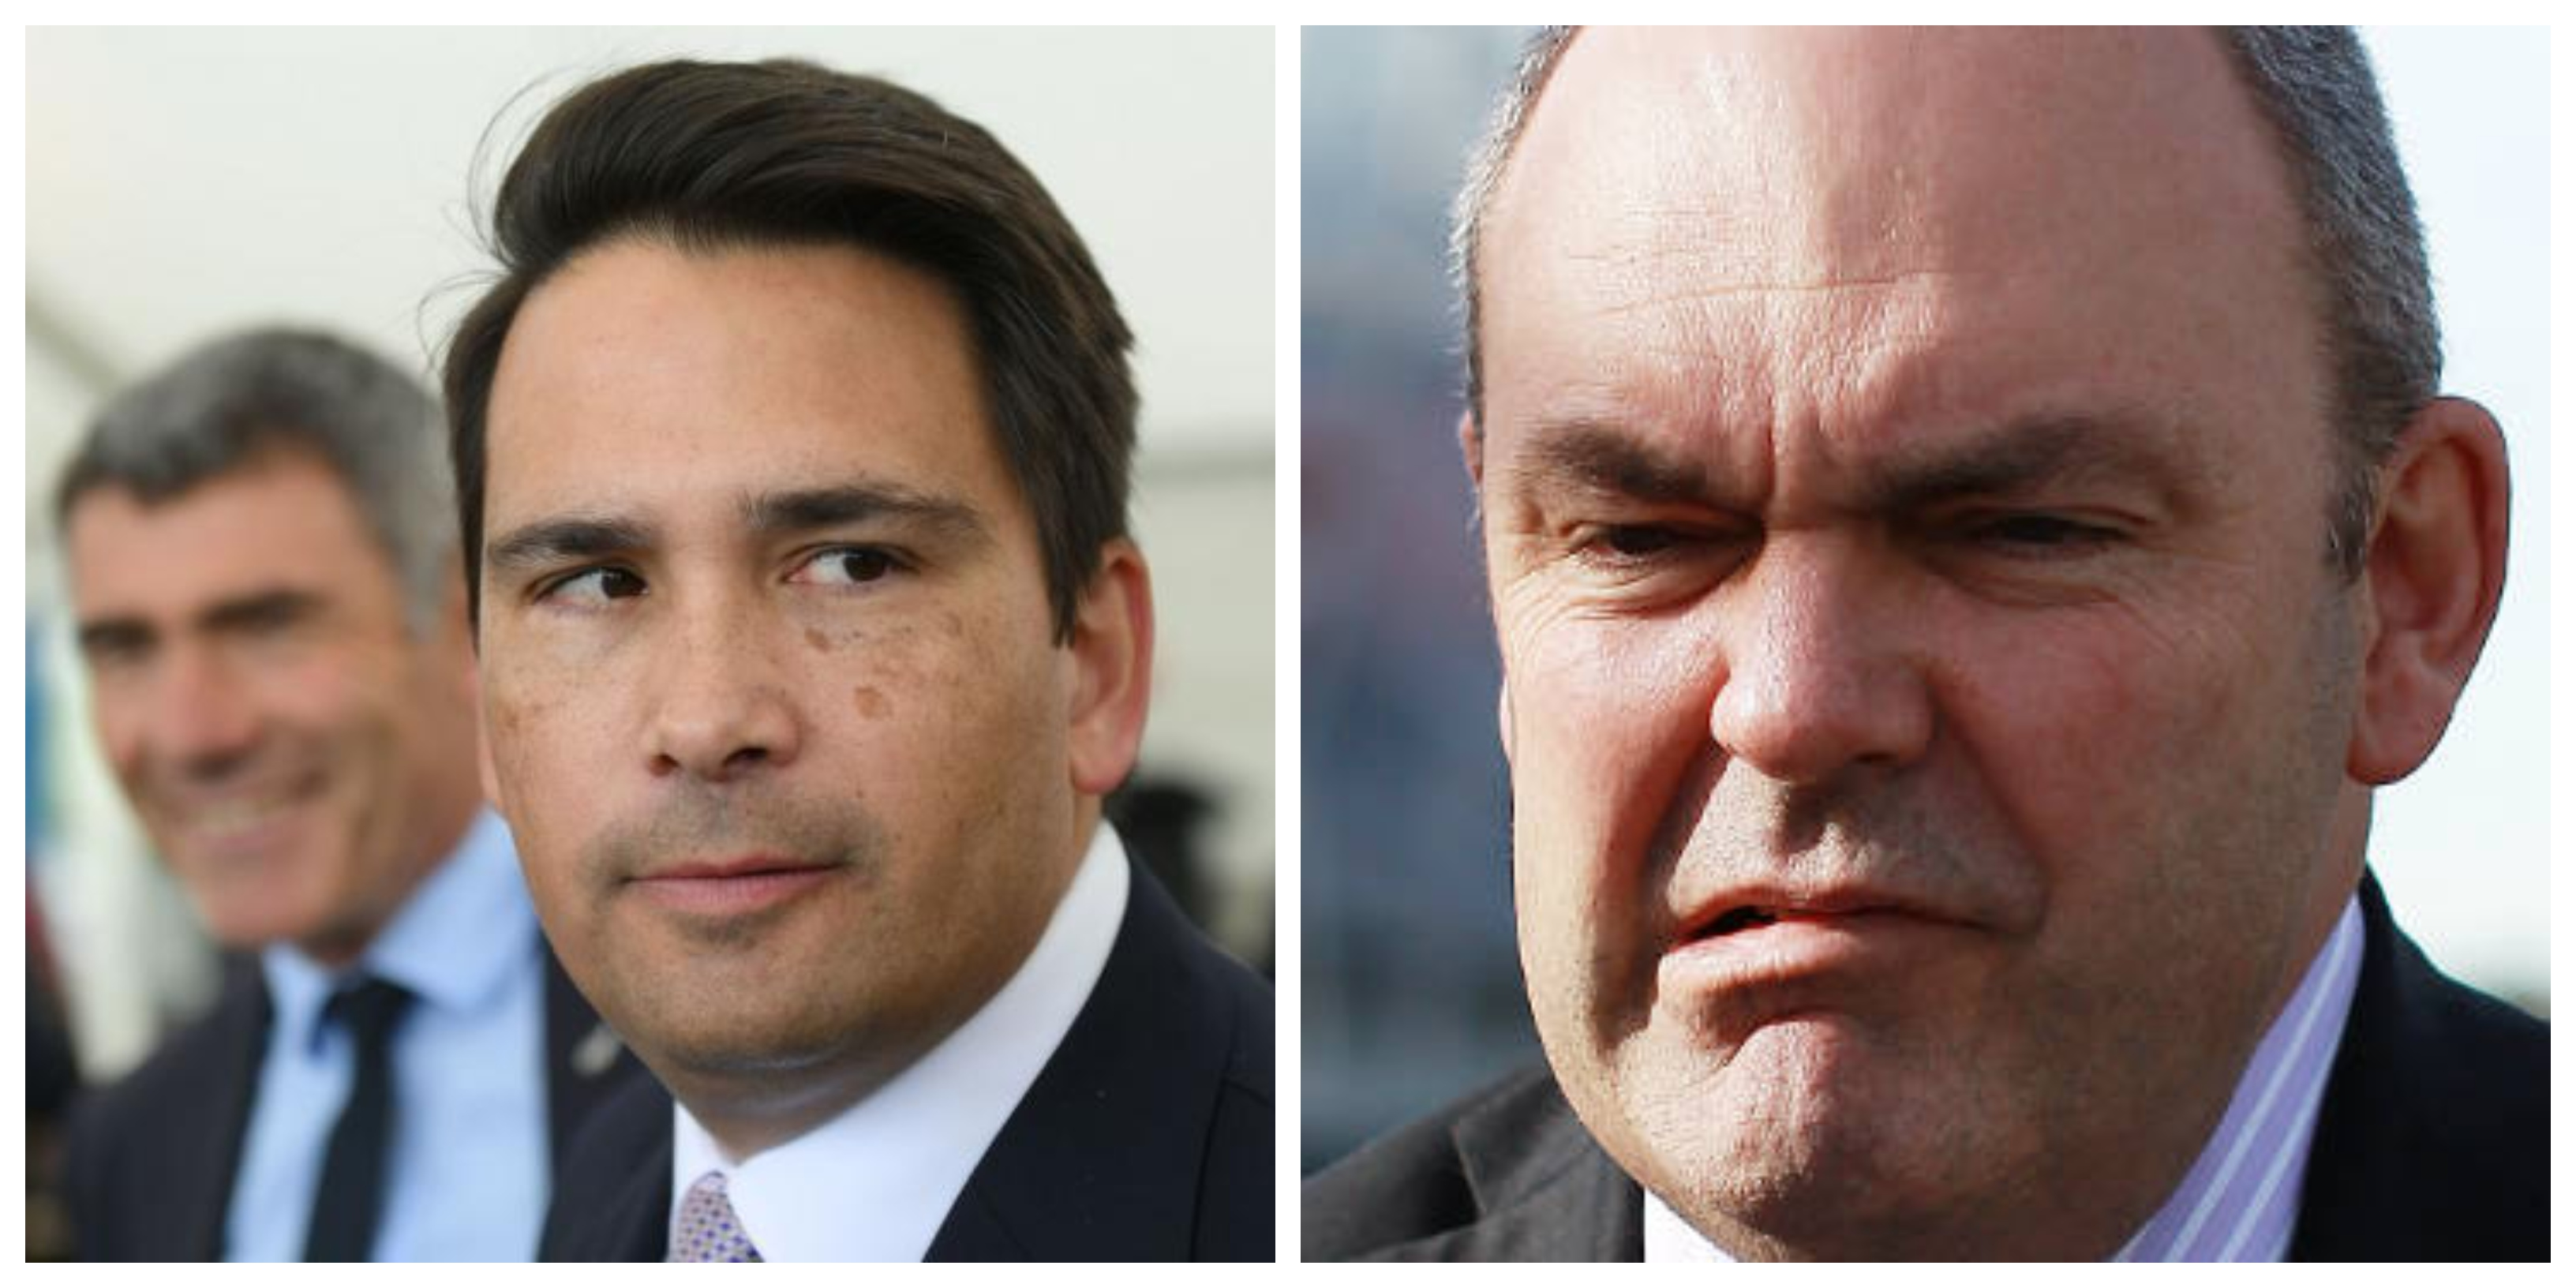 Simon Bridges Steven Joyce collage